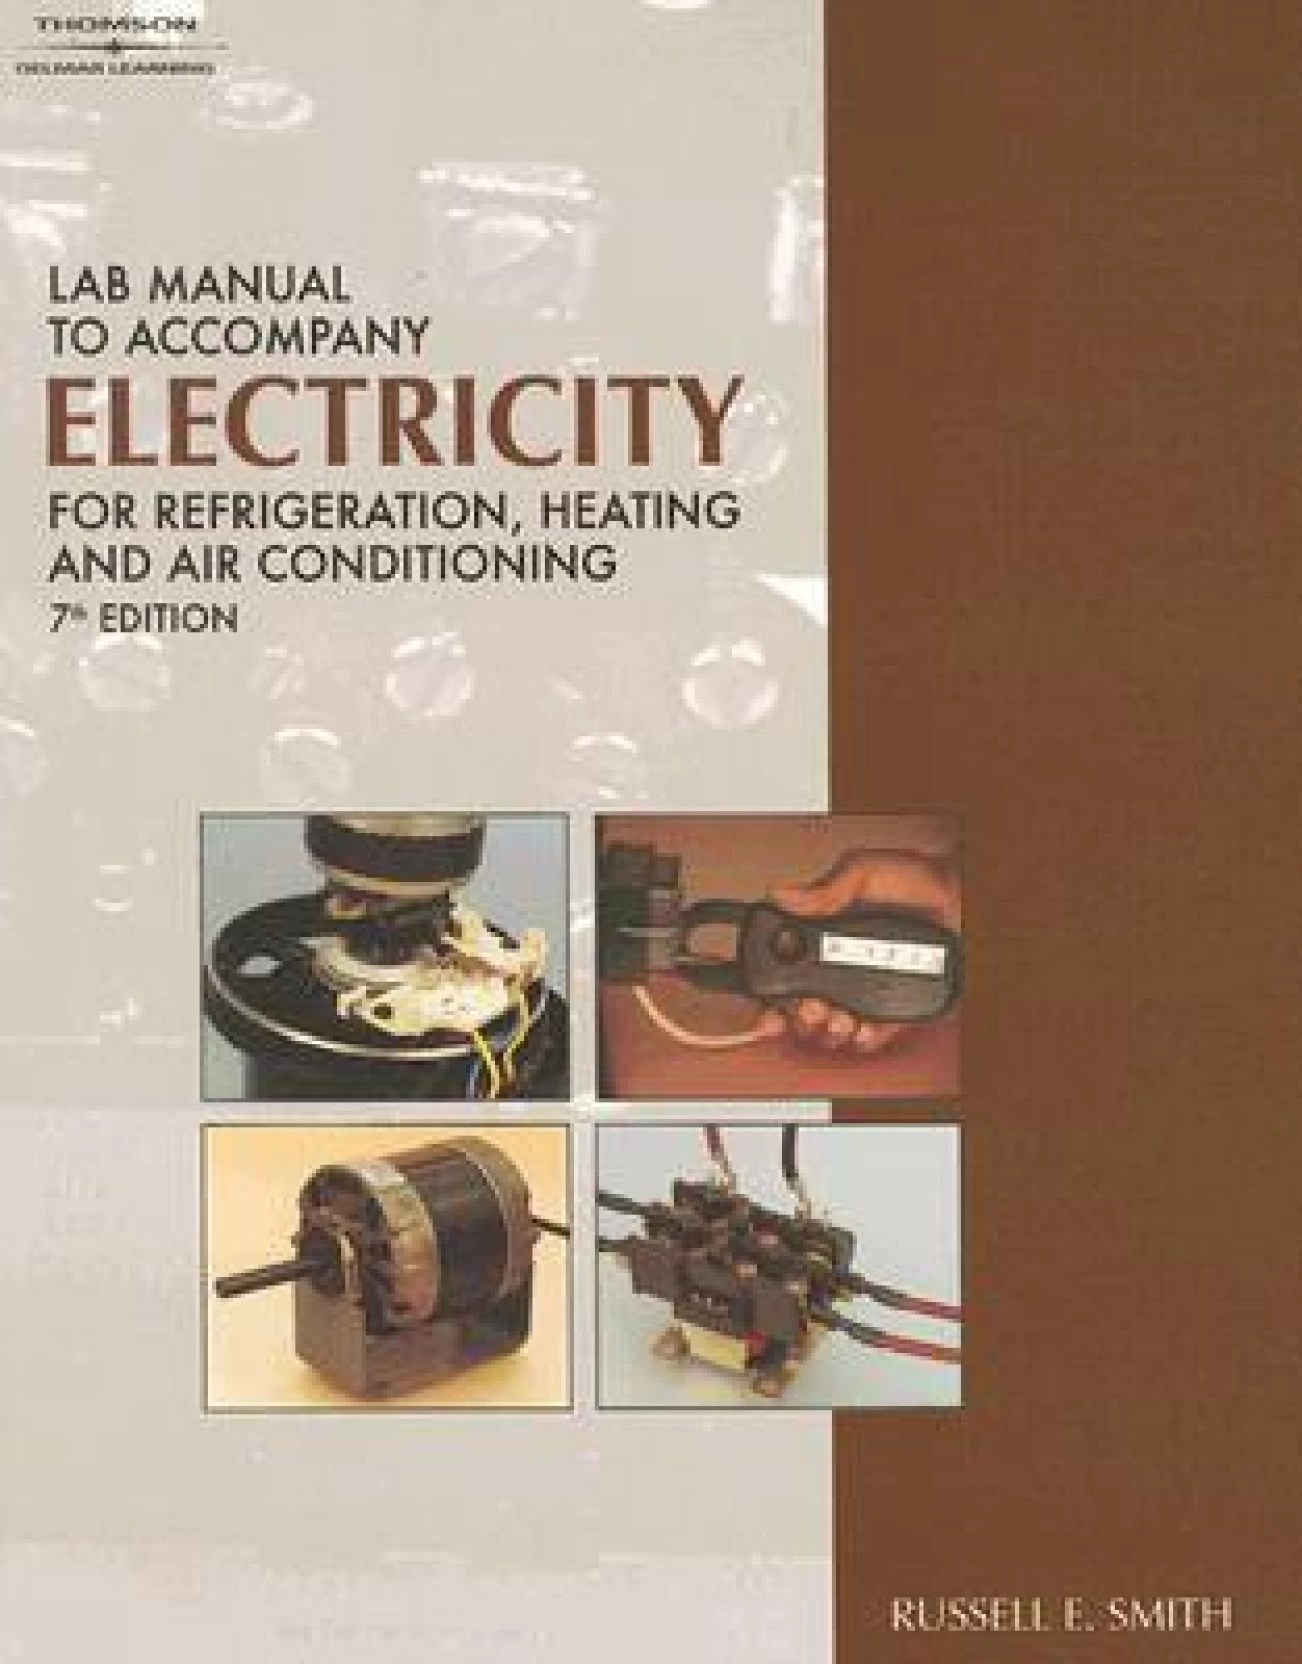 hight resolution of lab manual to accompany electricity for refrigeration heating and air conditioning english paperback russell e smith